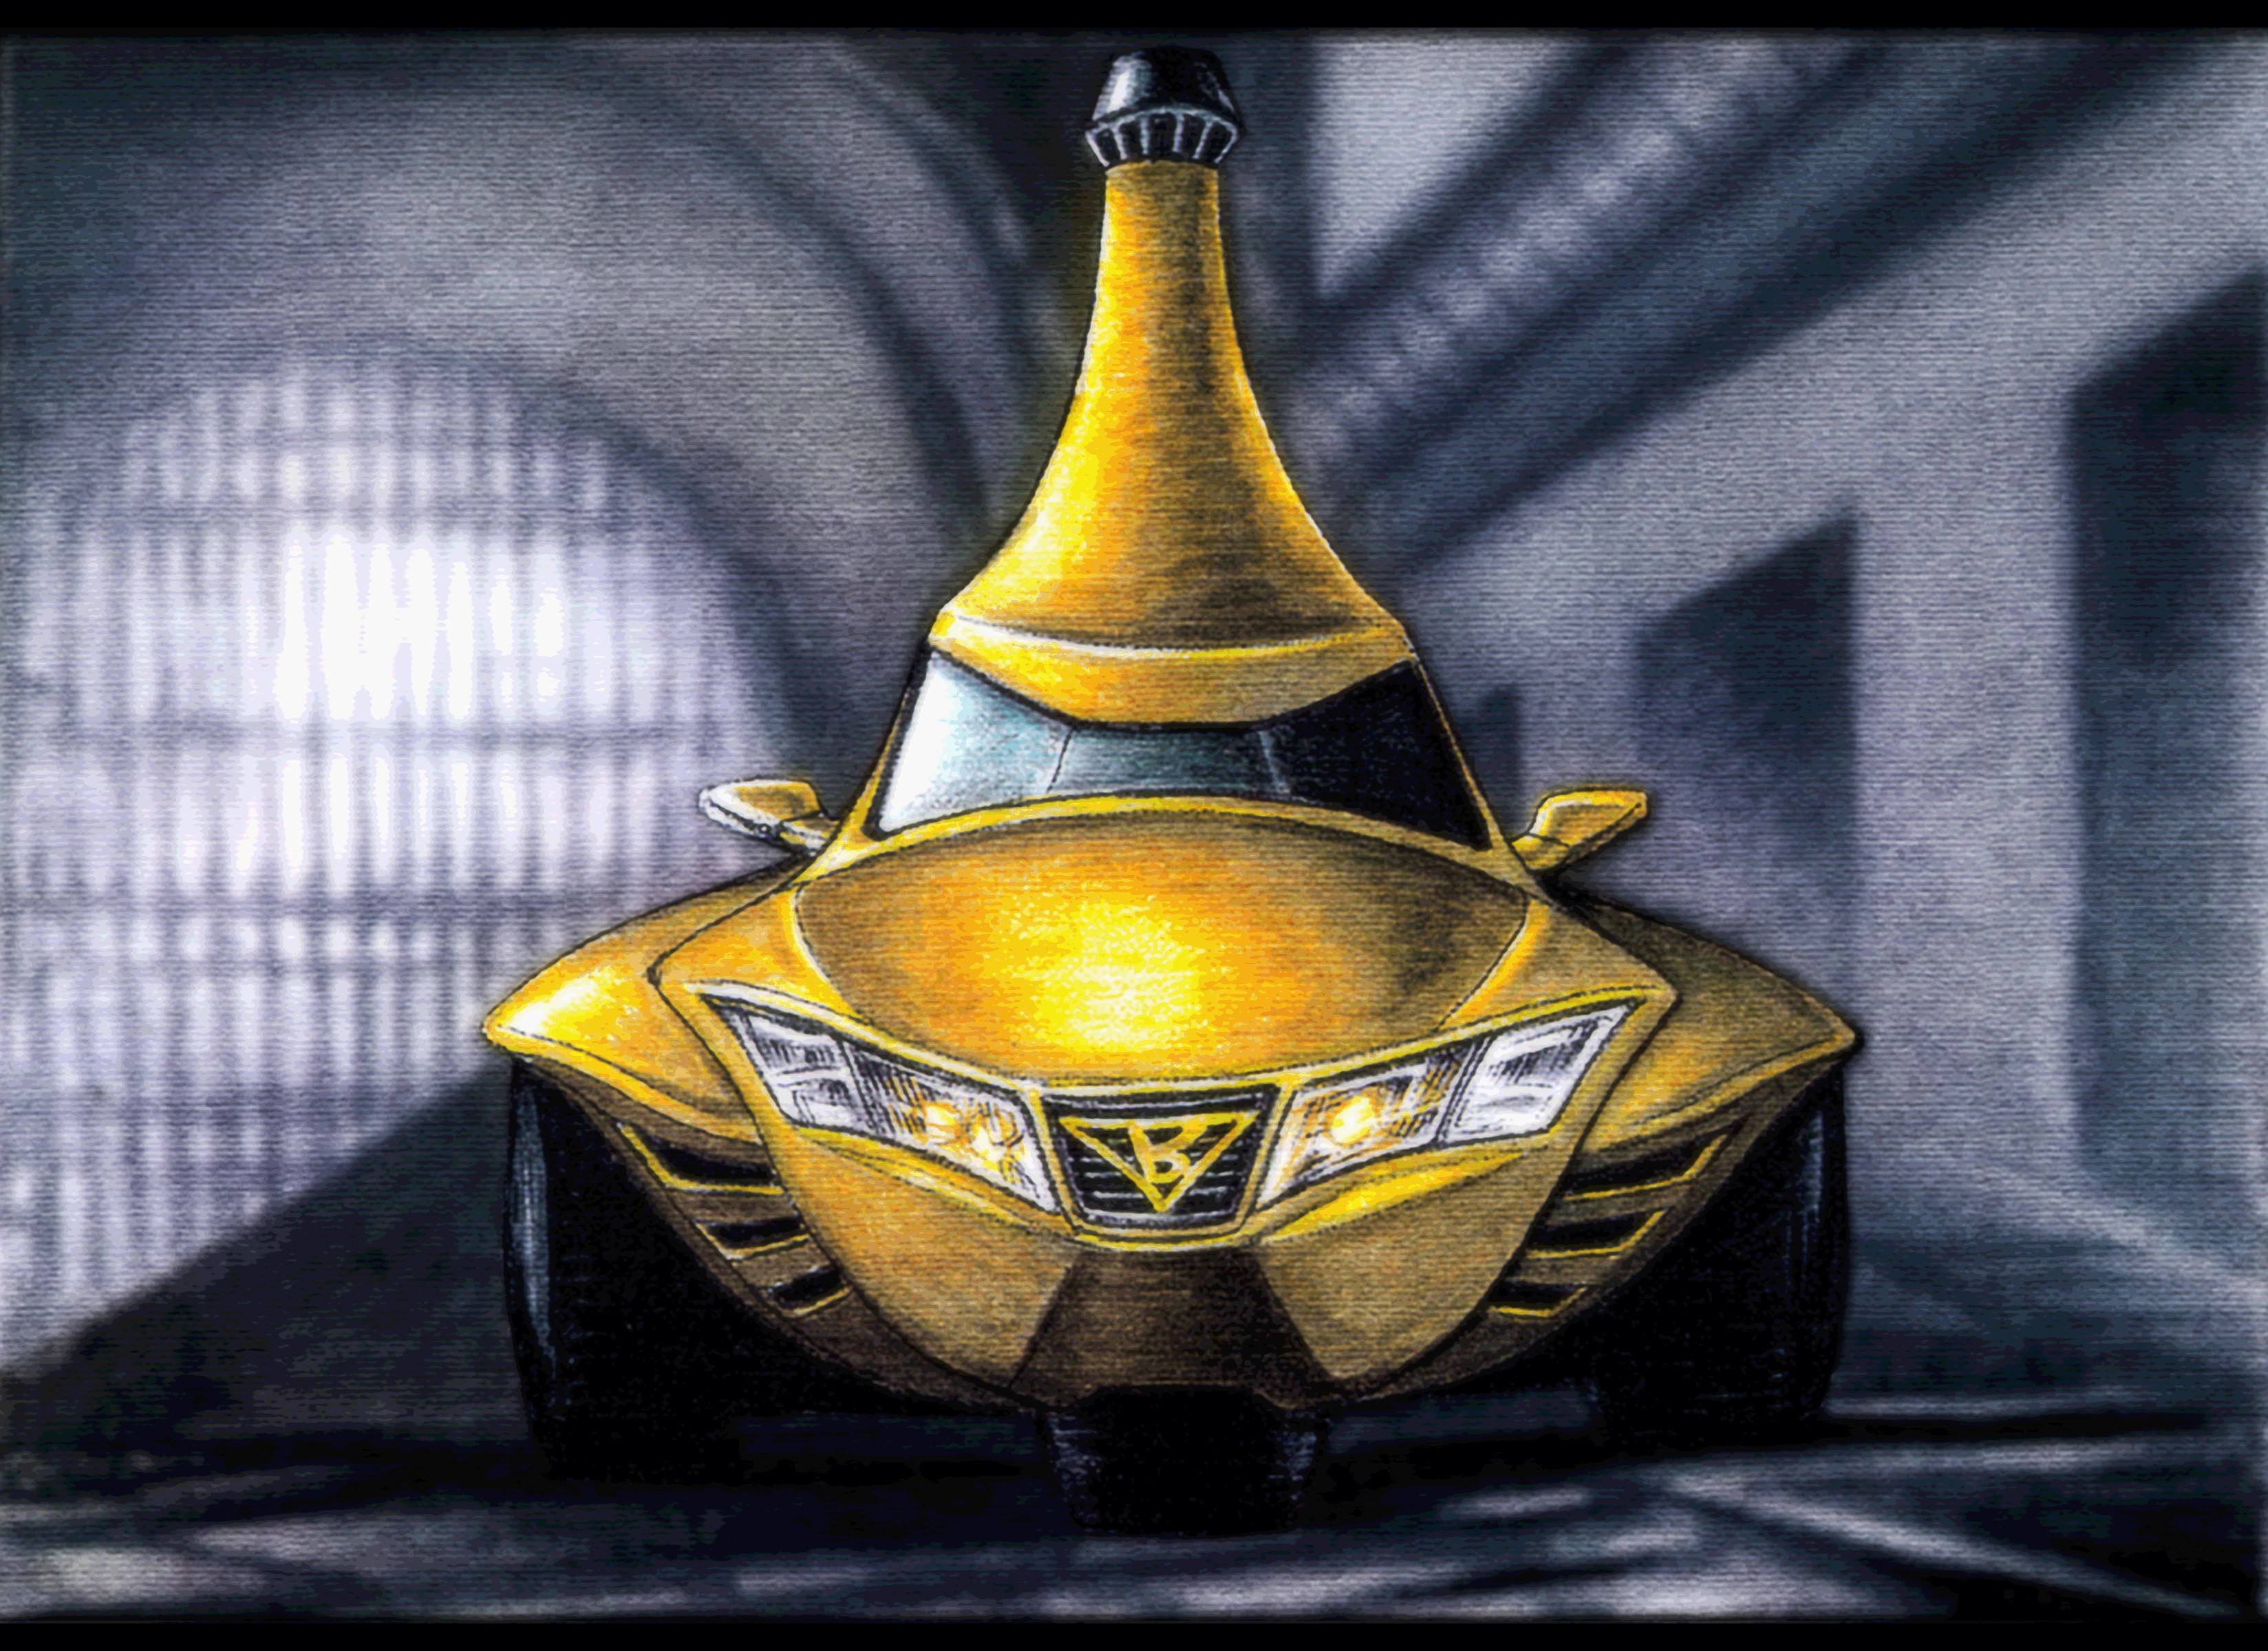 (1998) The Banana Mobile II